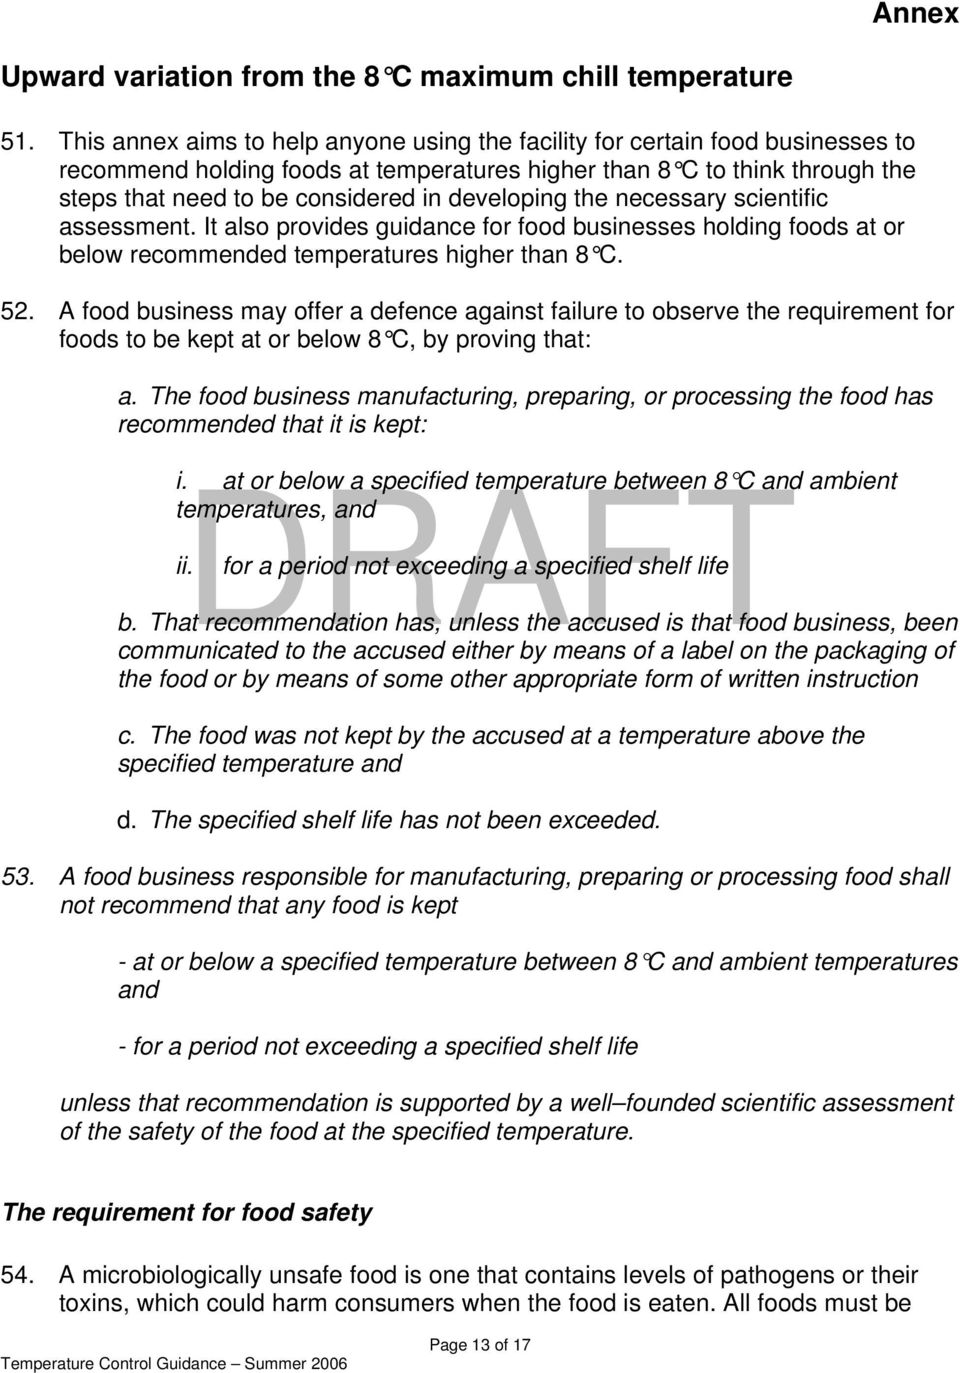 developing the necessary scientific assessment. It also provides guidance for food businesses holding foods at or below recommended temperatures higher than 8 C. 52.